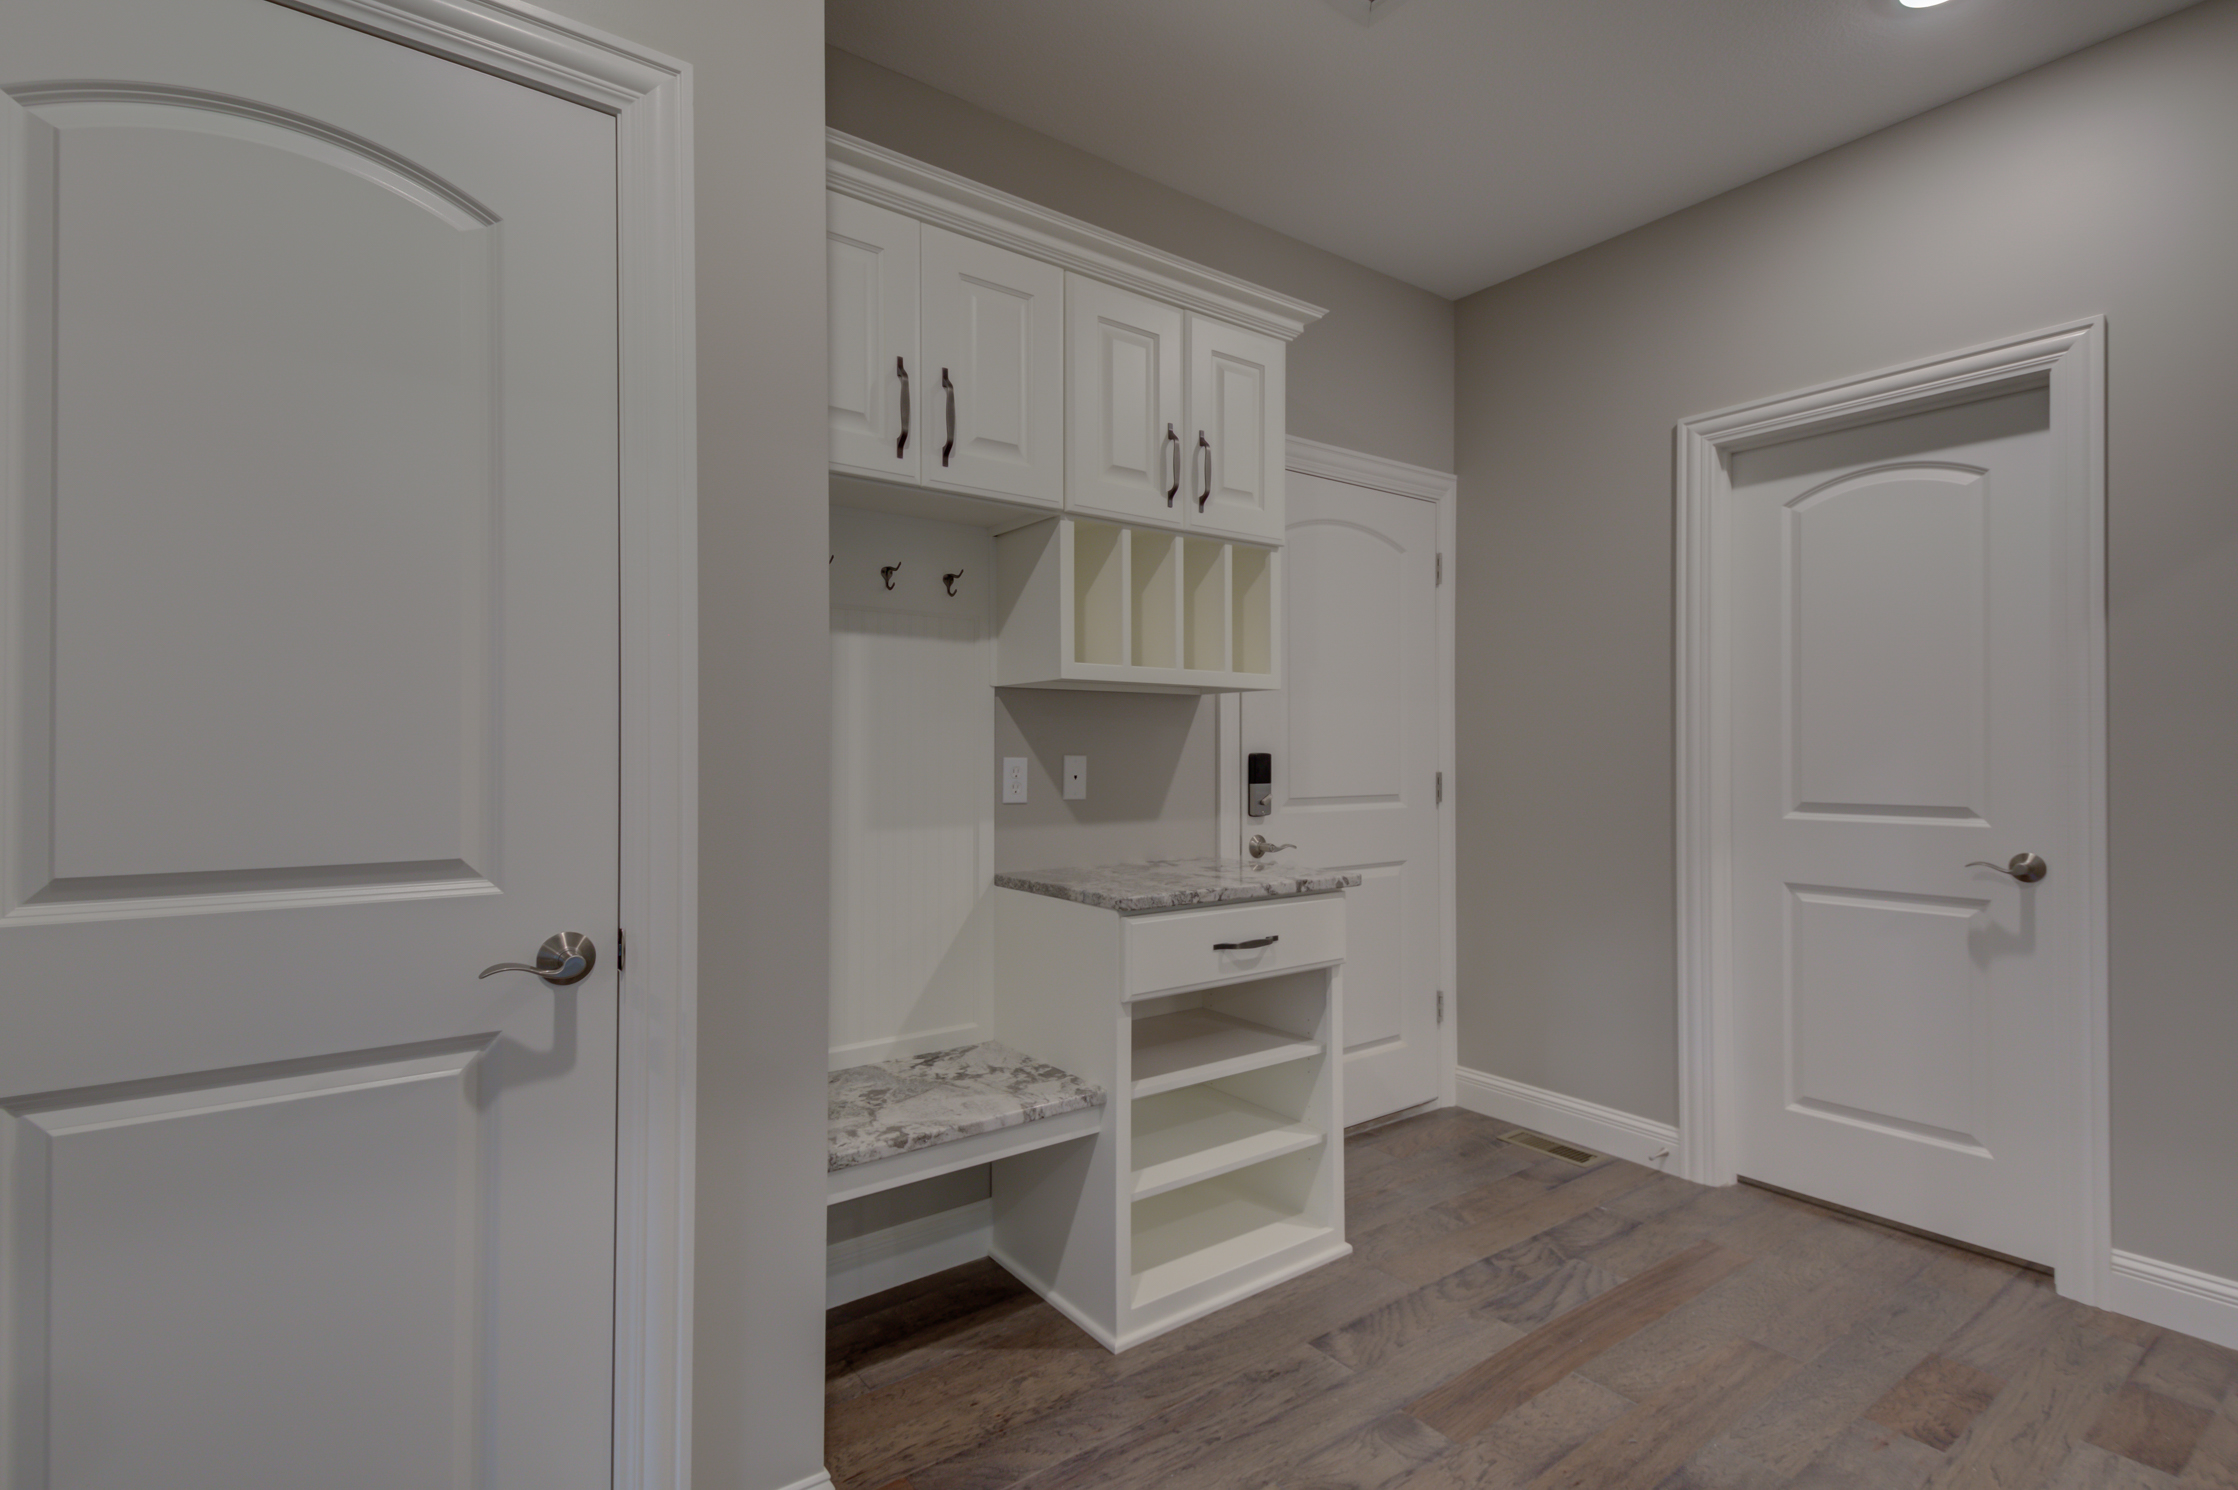 Owners enrty new home.jpg